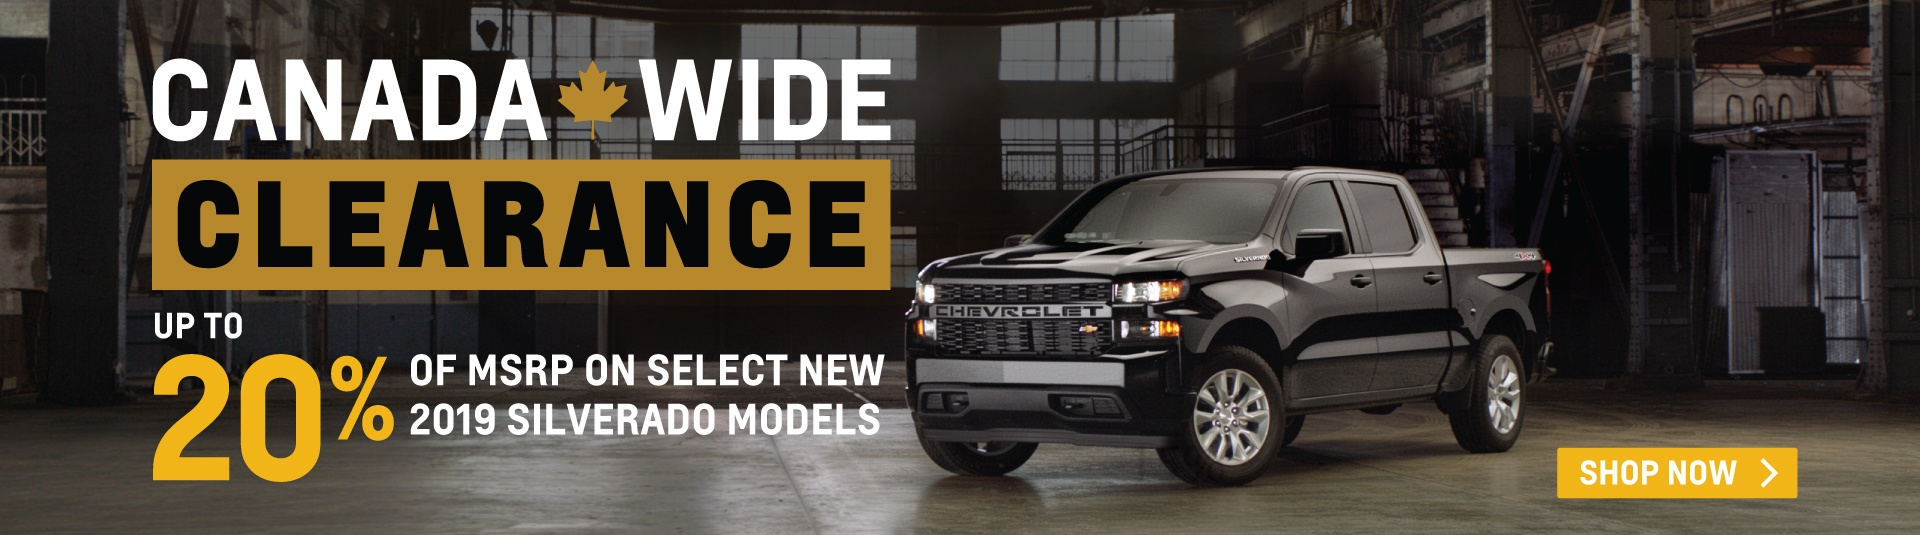 Applewood Chevrolet Clearance Event in Mississauga